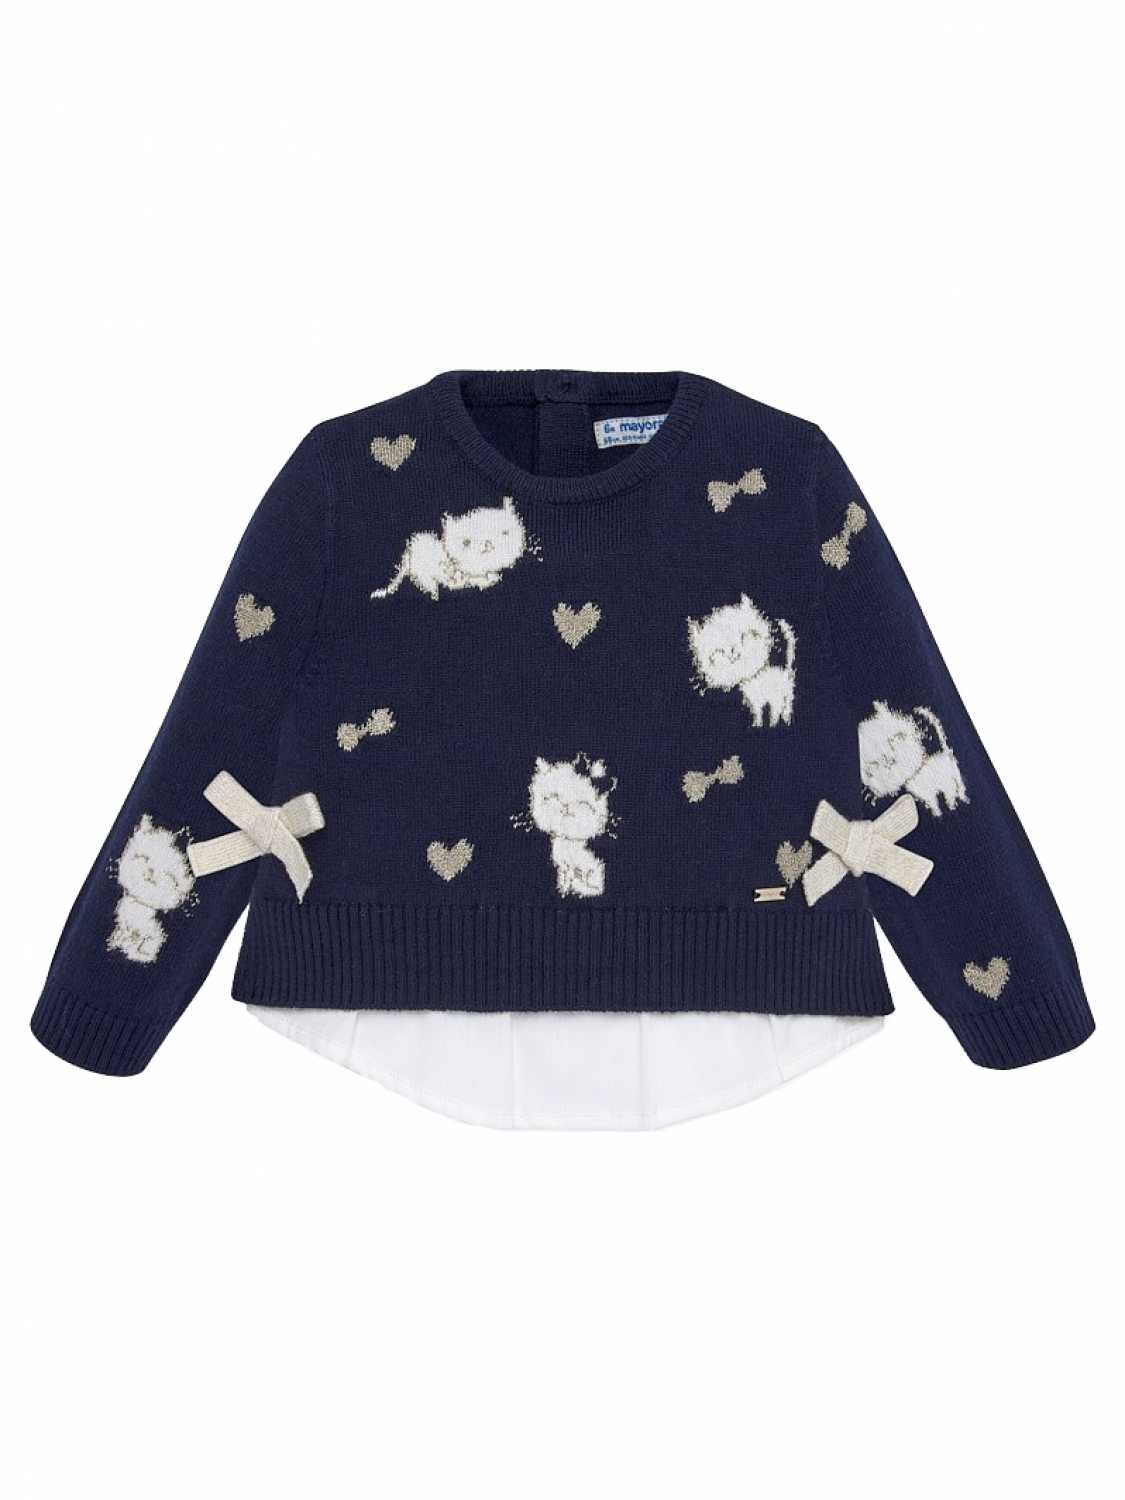 Mayoral Sweater  - meisjes - All over print -